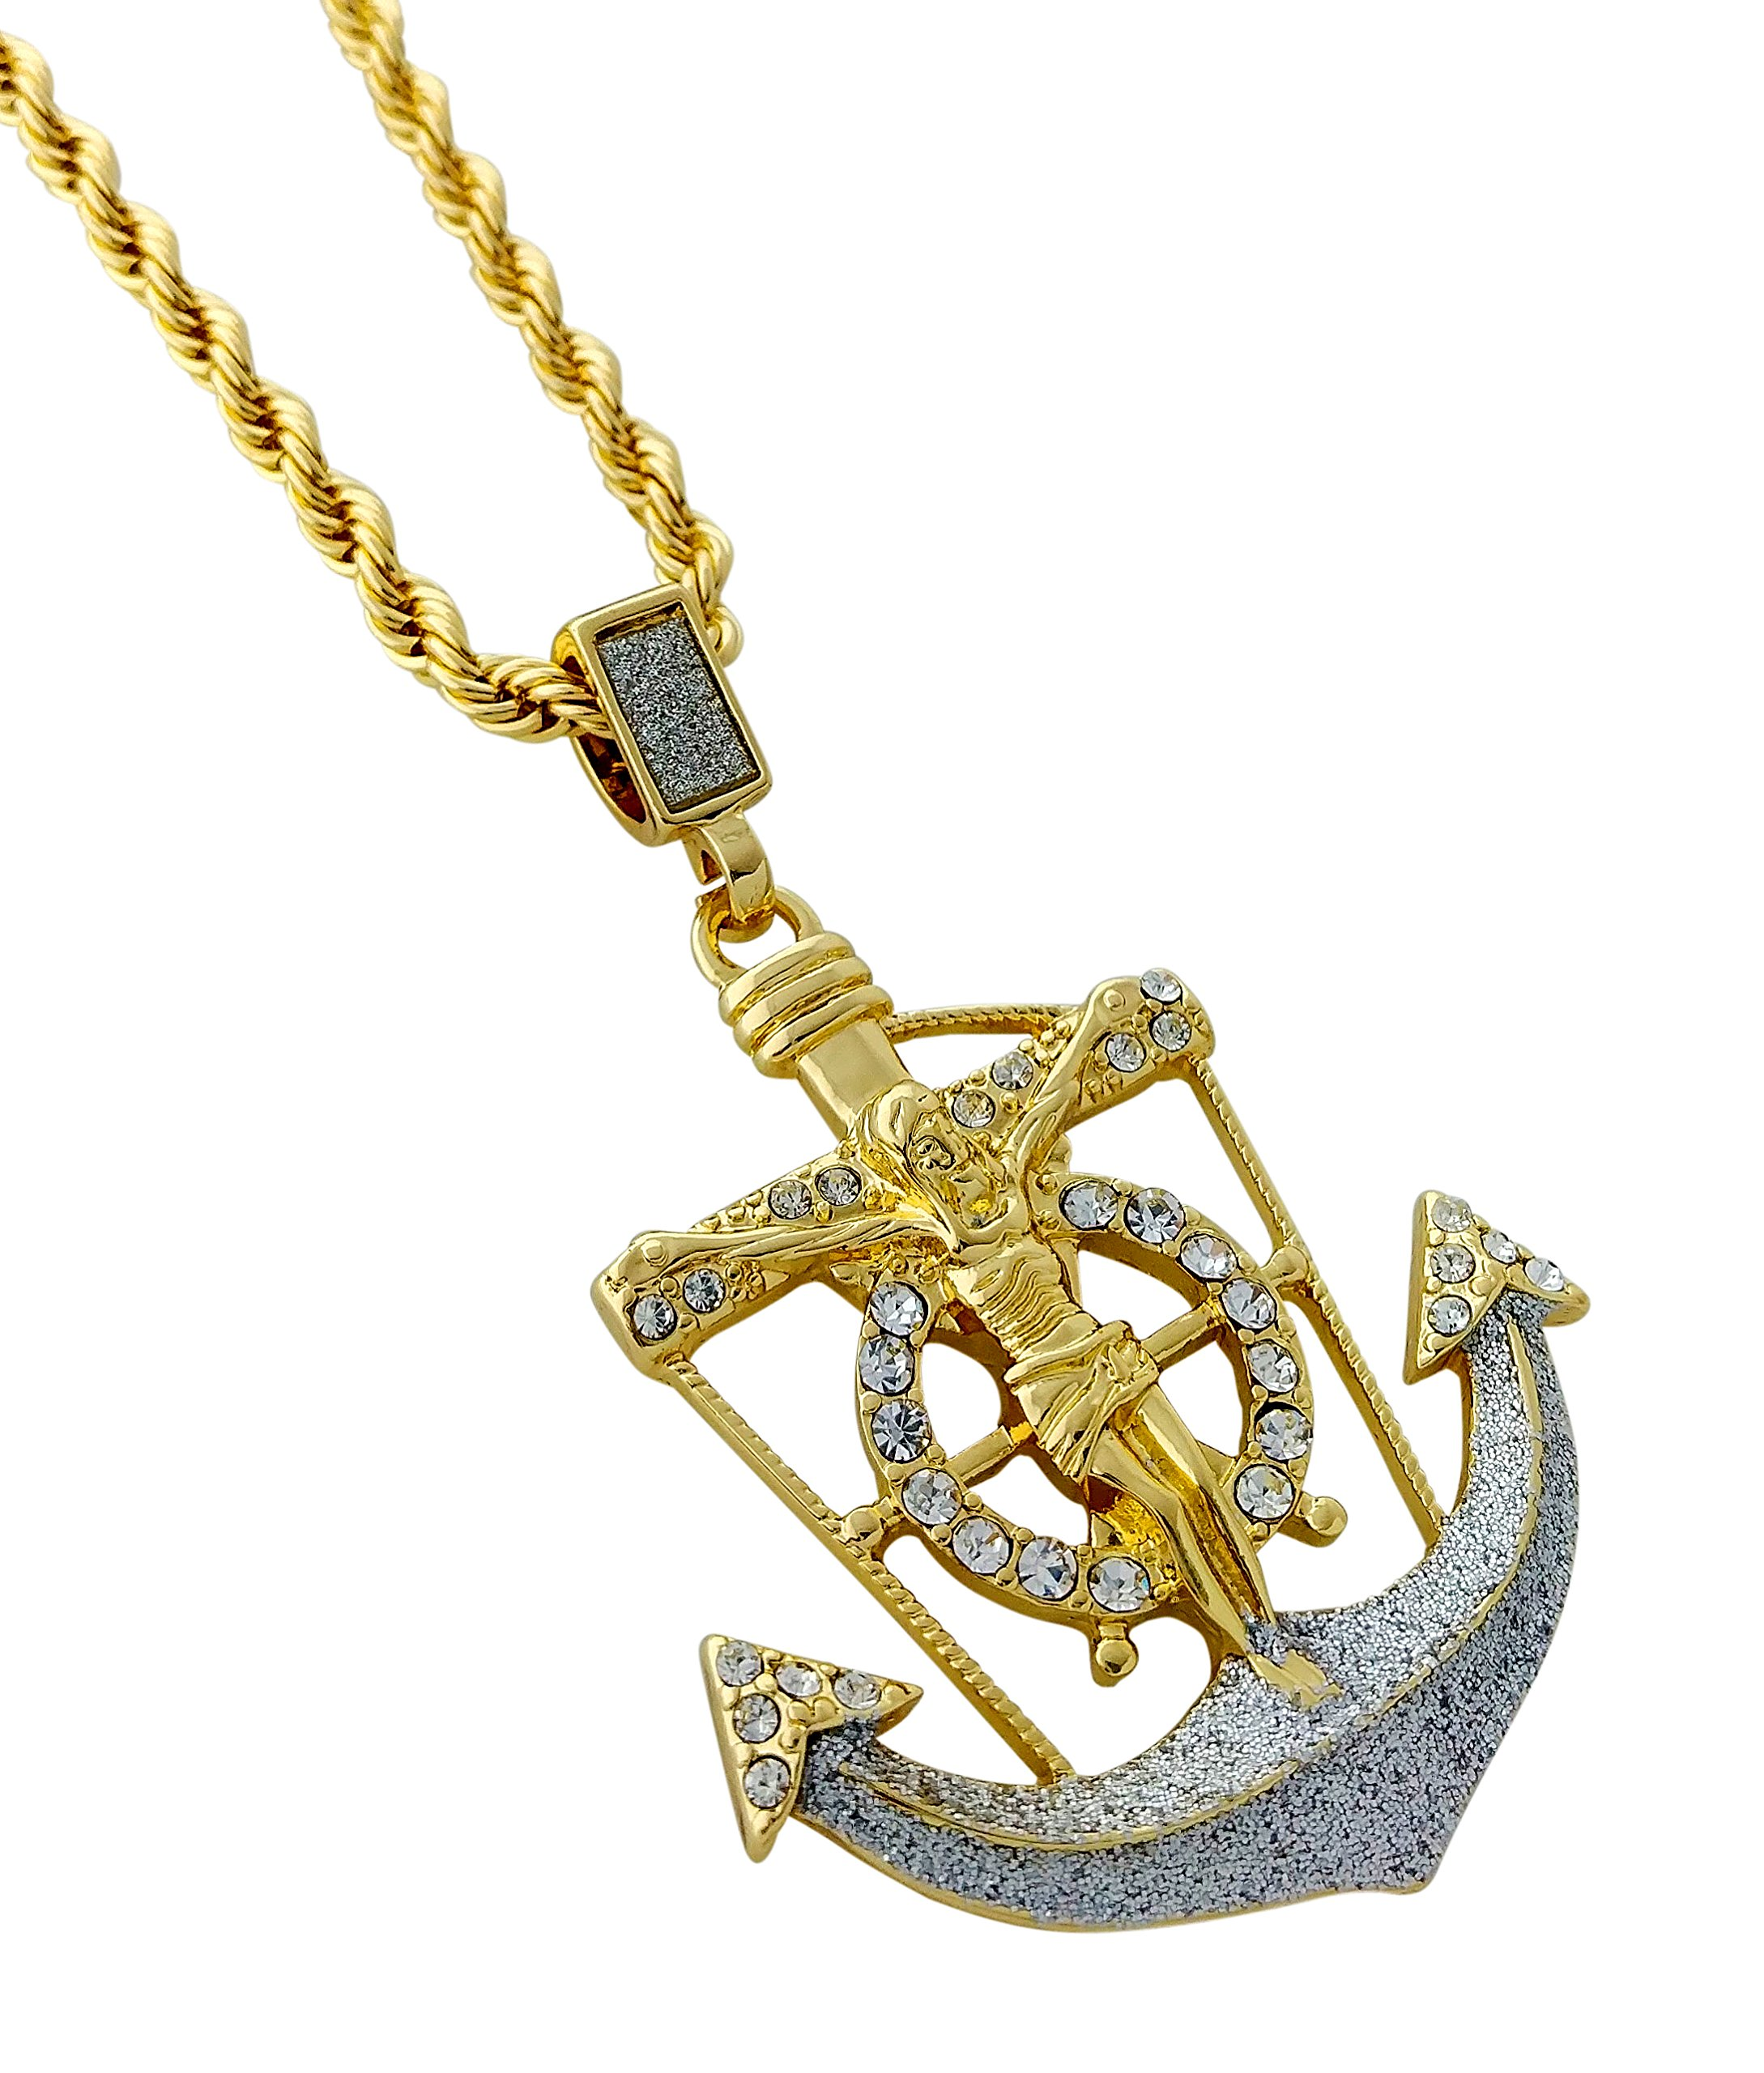 necklace jewellery chain silver s heavy width men anchor curb solid sterling